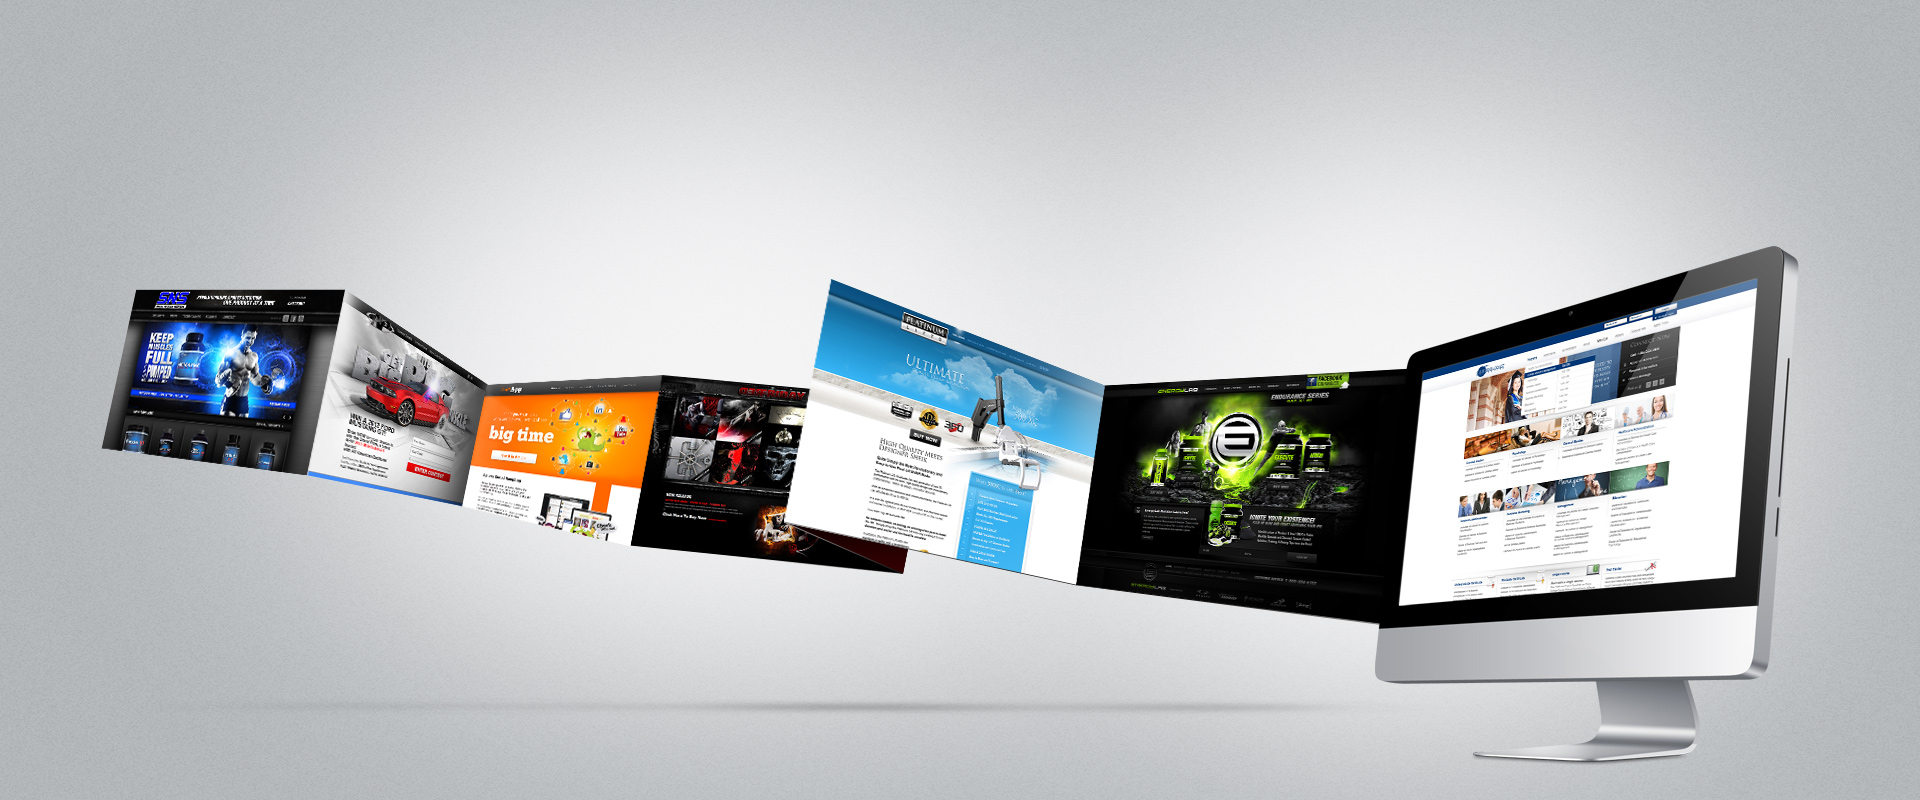 Dpm web design ltd all services all abilities for Blueprint websites